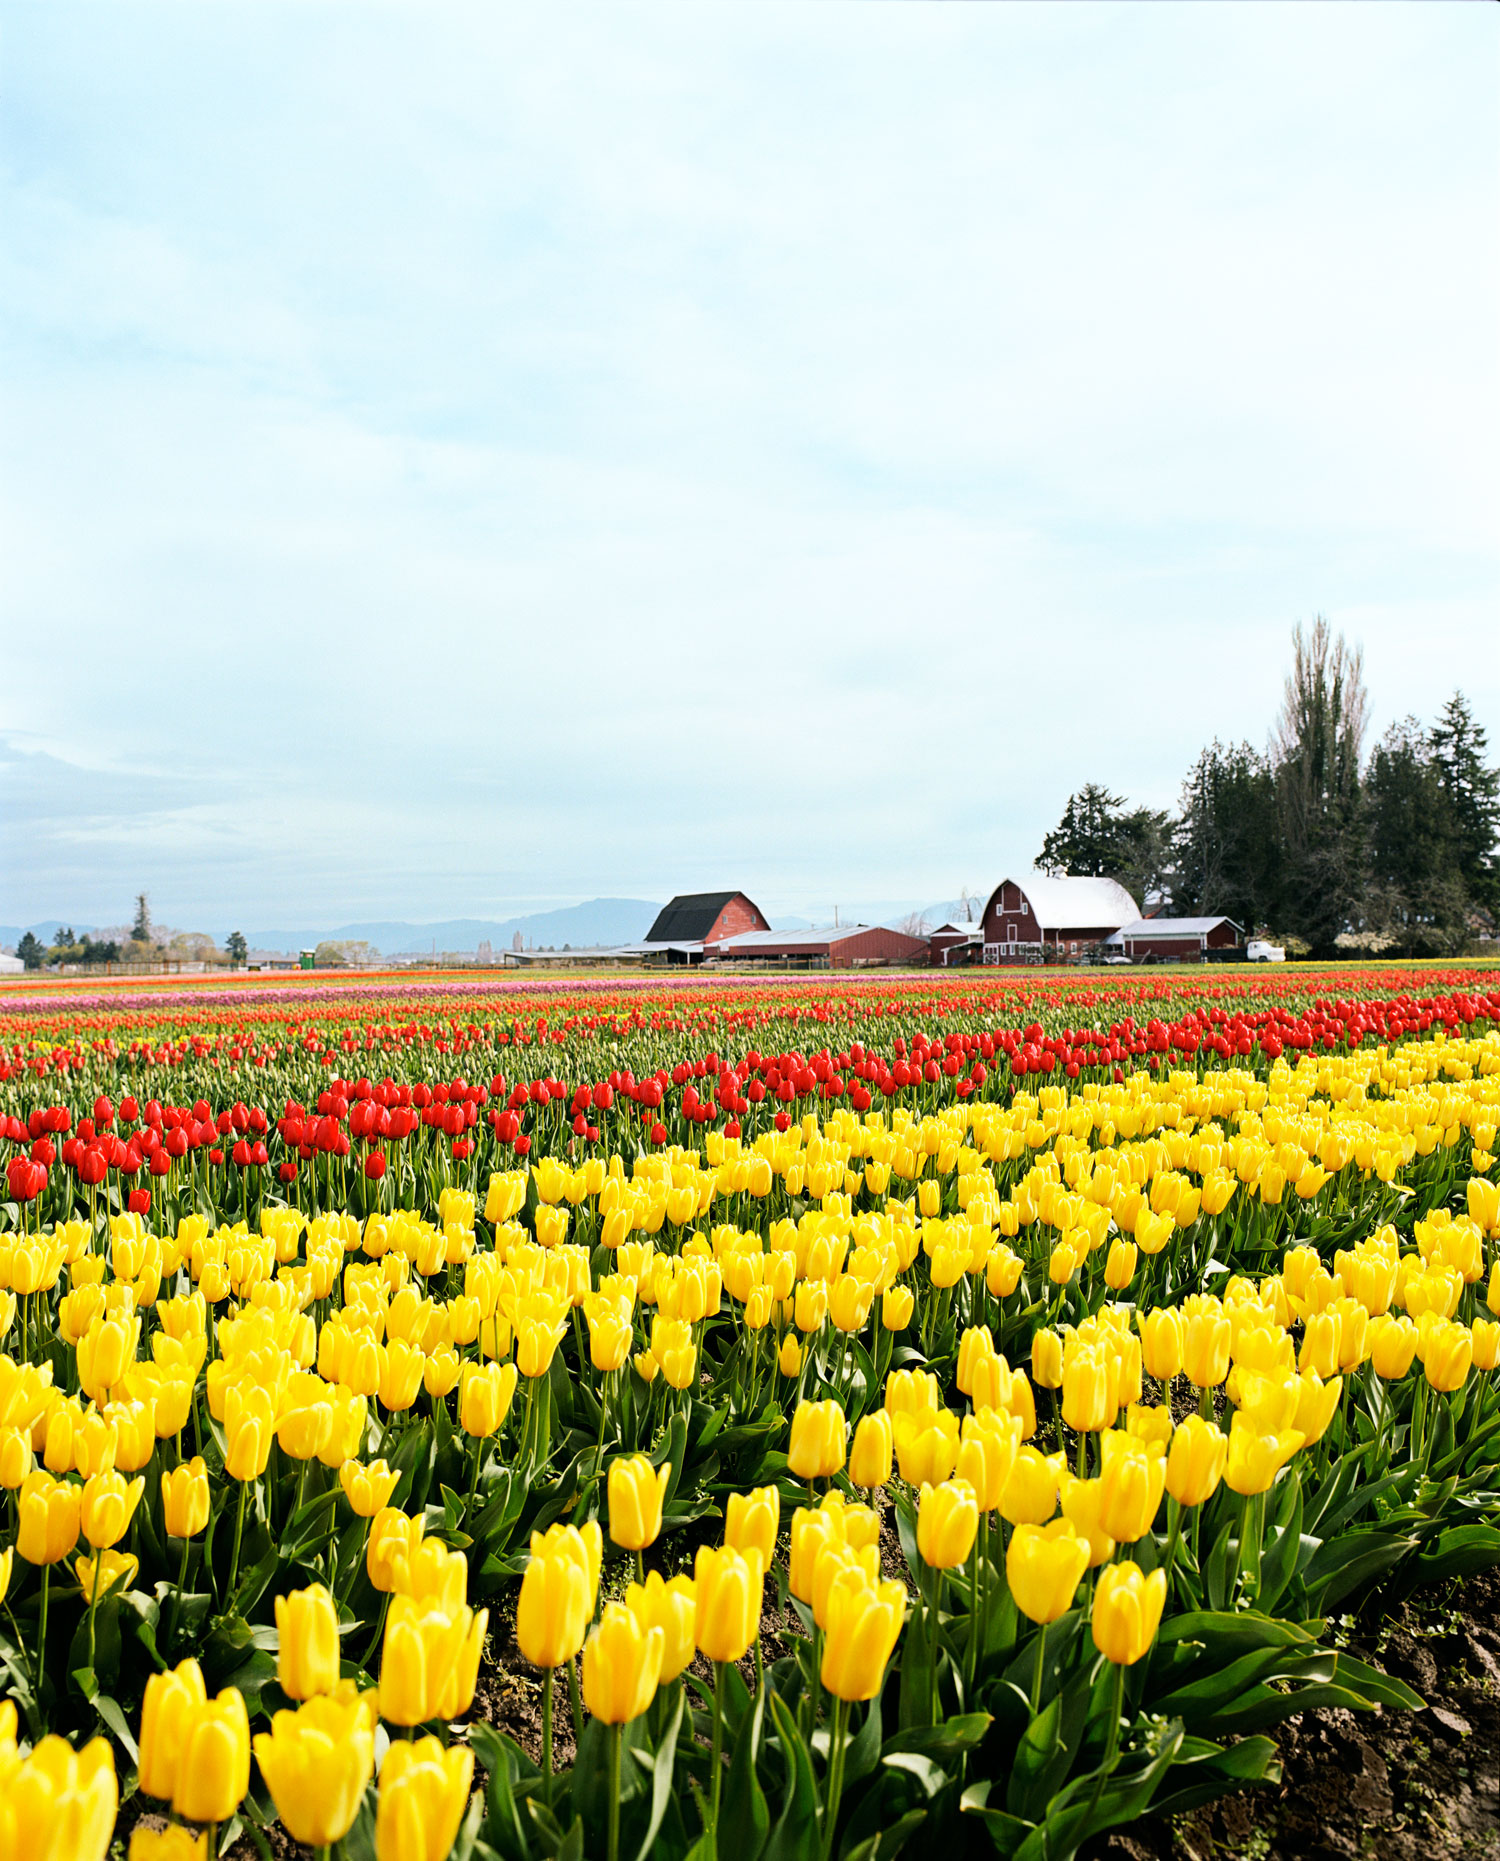 Take in Tulip Season in Skagit Valley, WA